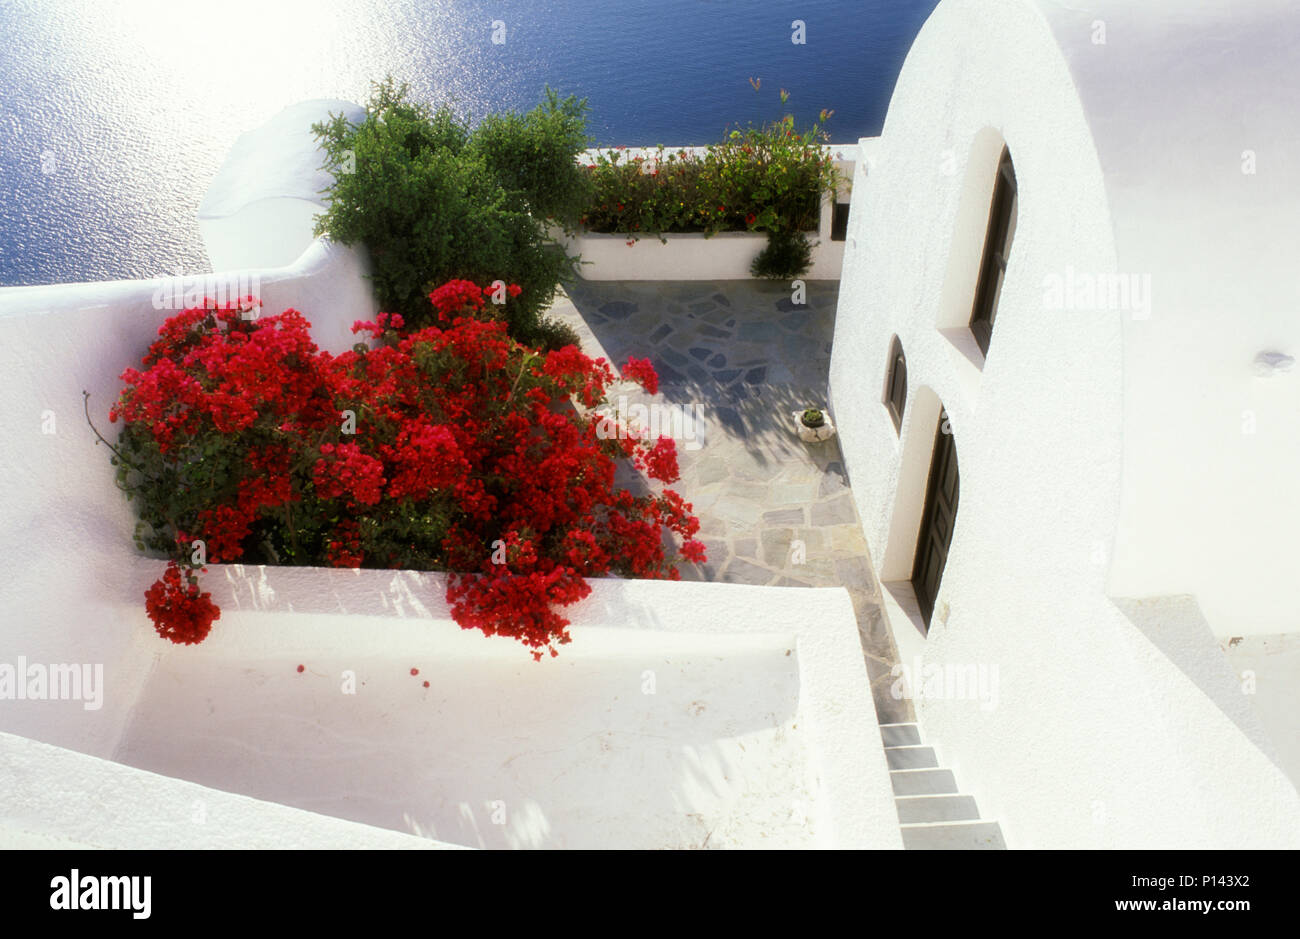 Greek Island of Thira (Santorini), vernacular white architecture in Thira with valued roof and terrace and red bougainvillea, with blue ocean, Greece Stock Photo